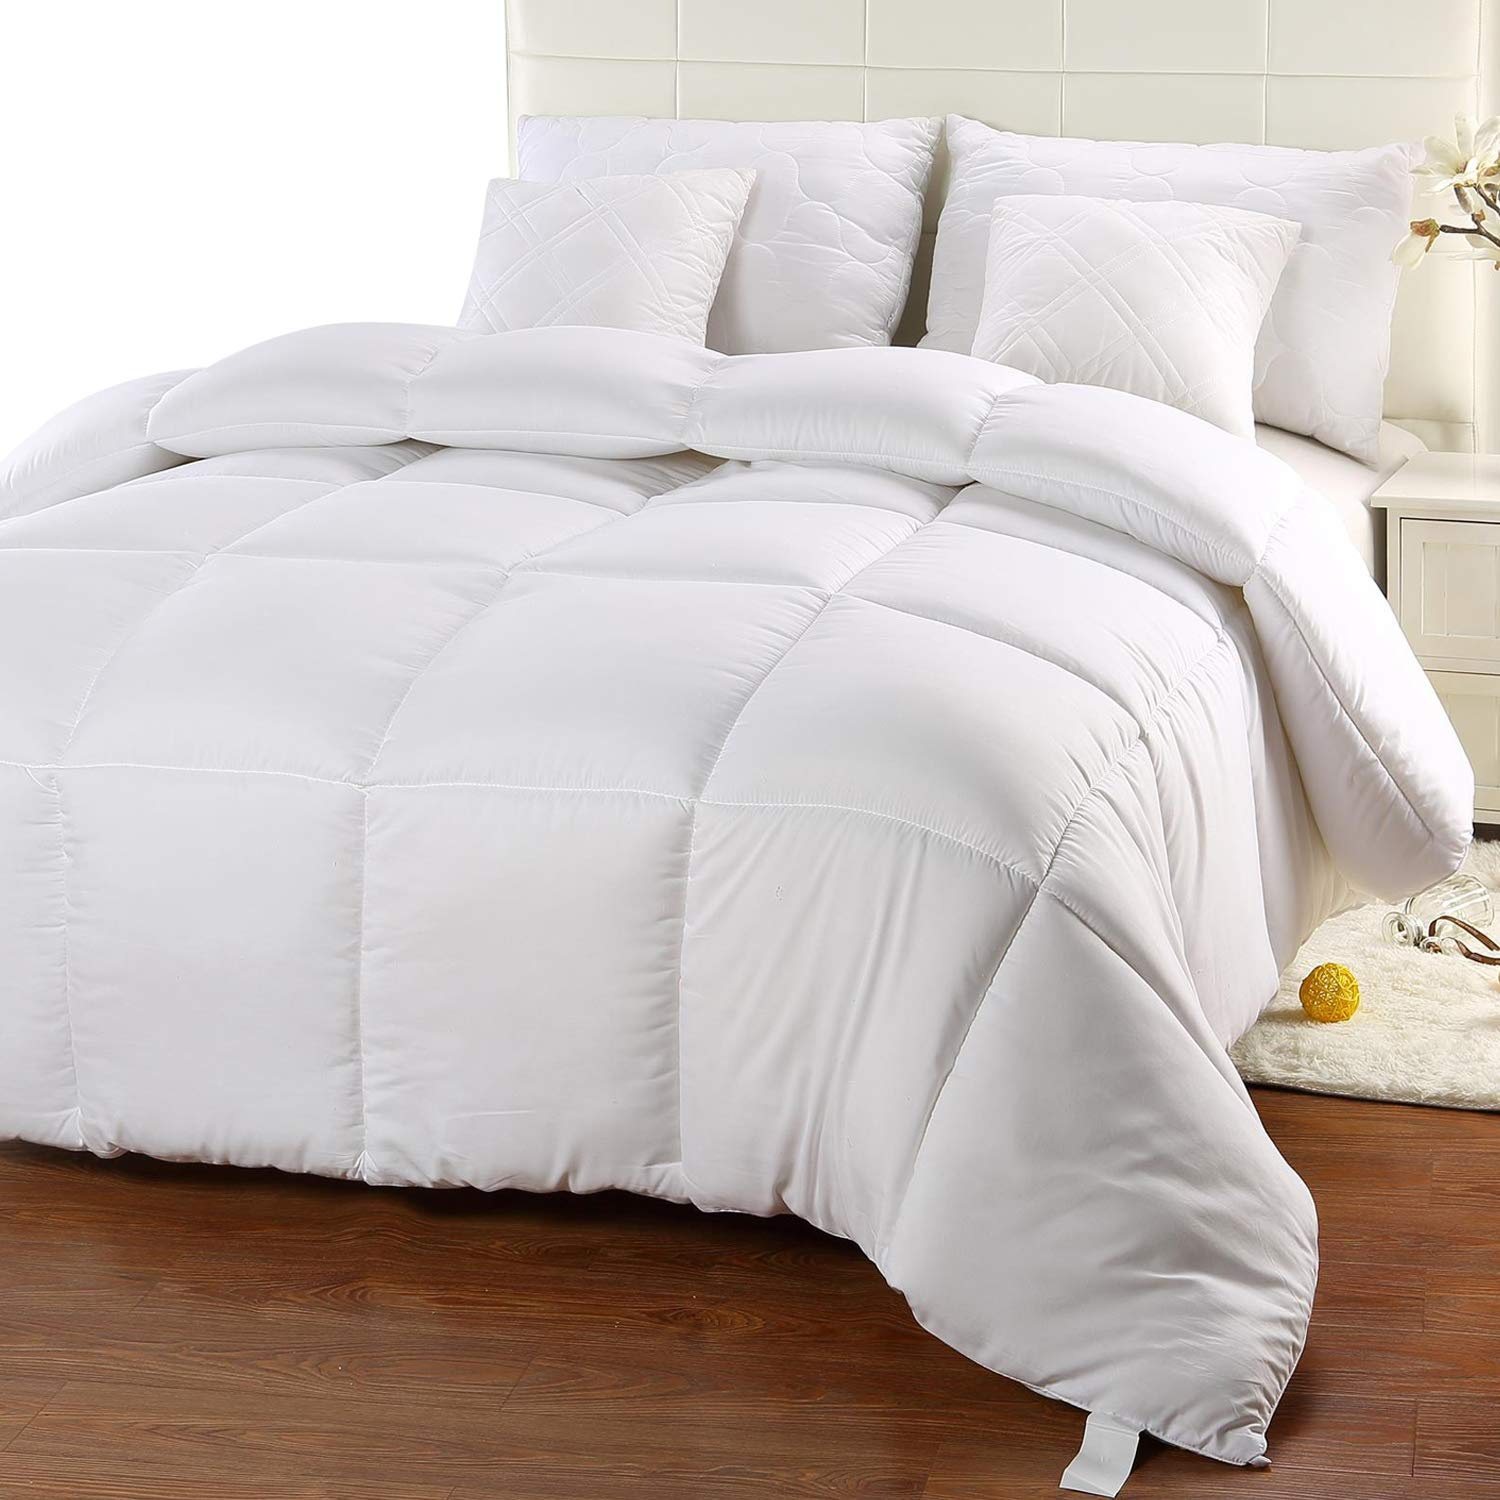 Utopia Bedding Comforter Duvet Insert - Quilted Comforter with Corner Tabs -  Box Stitched Down Alternative Comforter (Queen, White) by Utopia Bedding